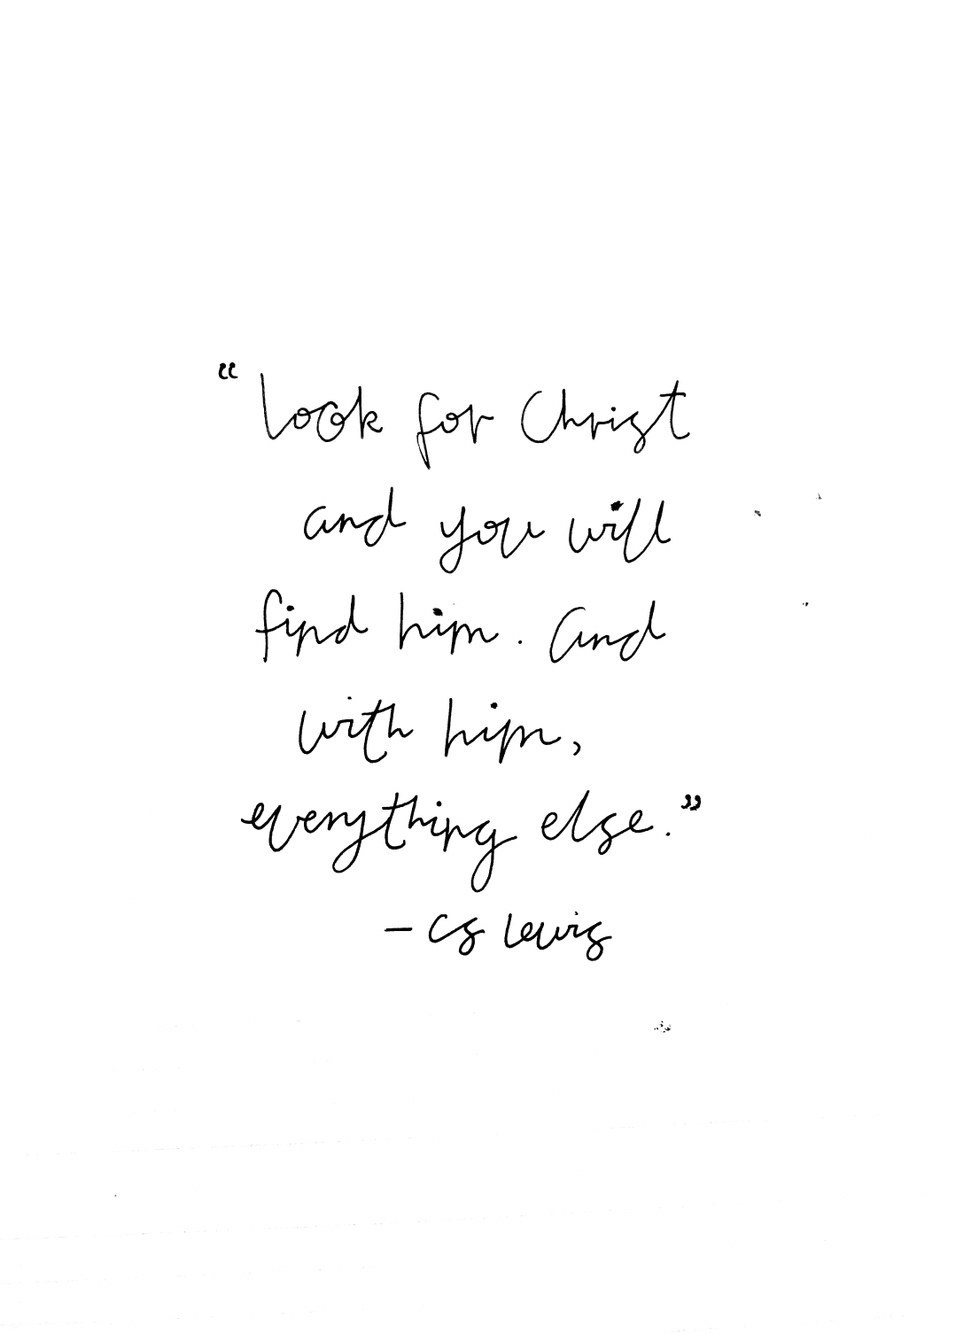 Cs Lewis Quotes On Love 25 Of The Best C.slewis Quotes